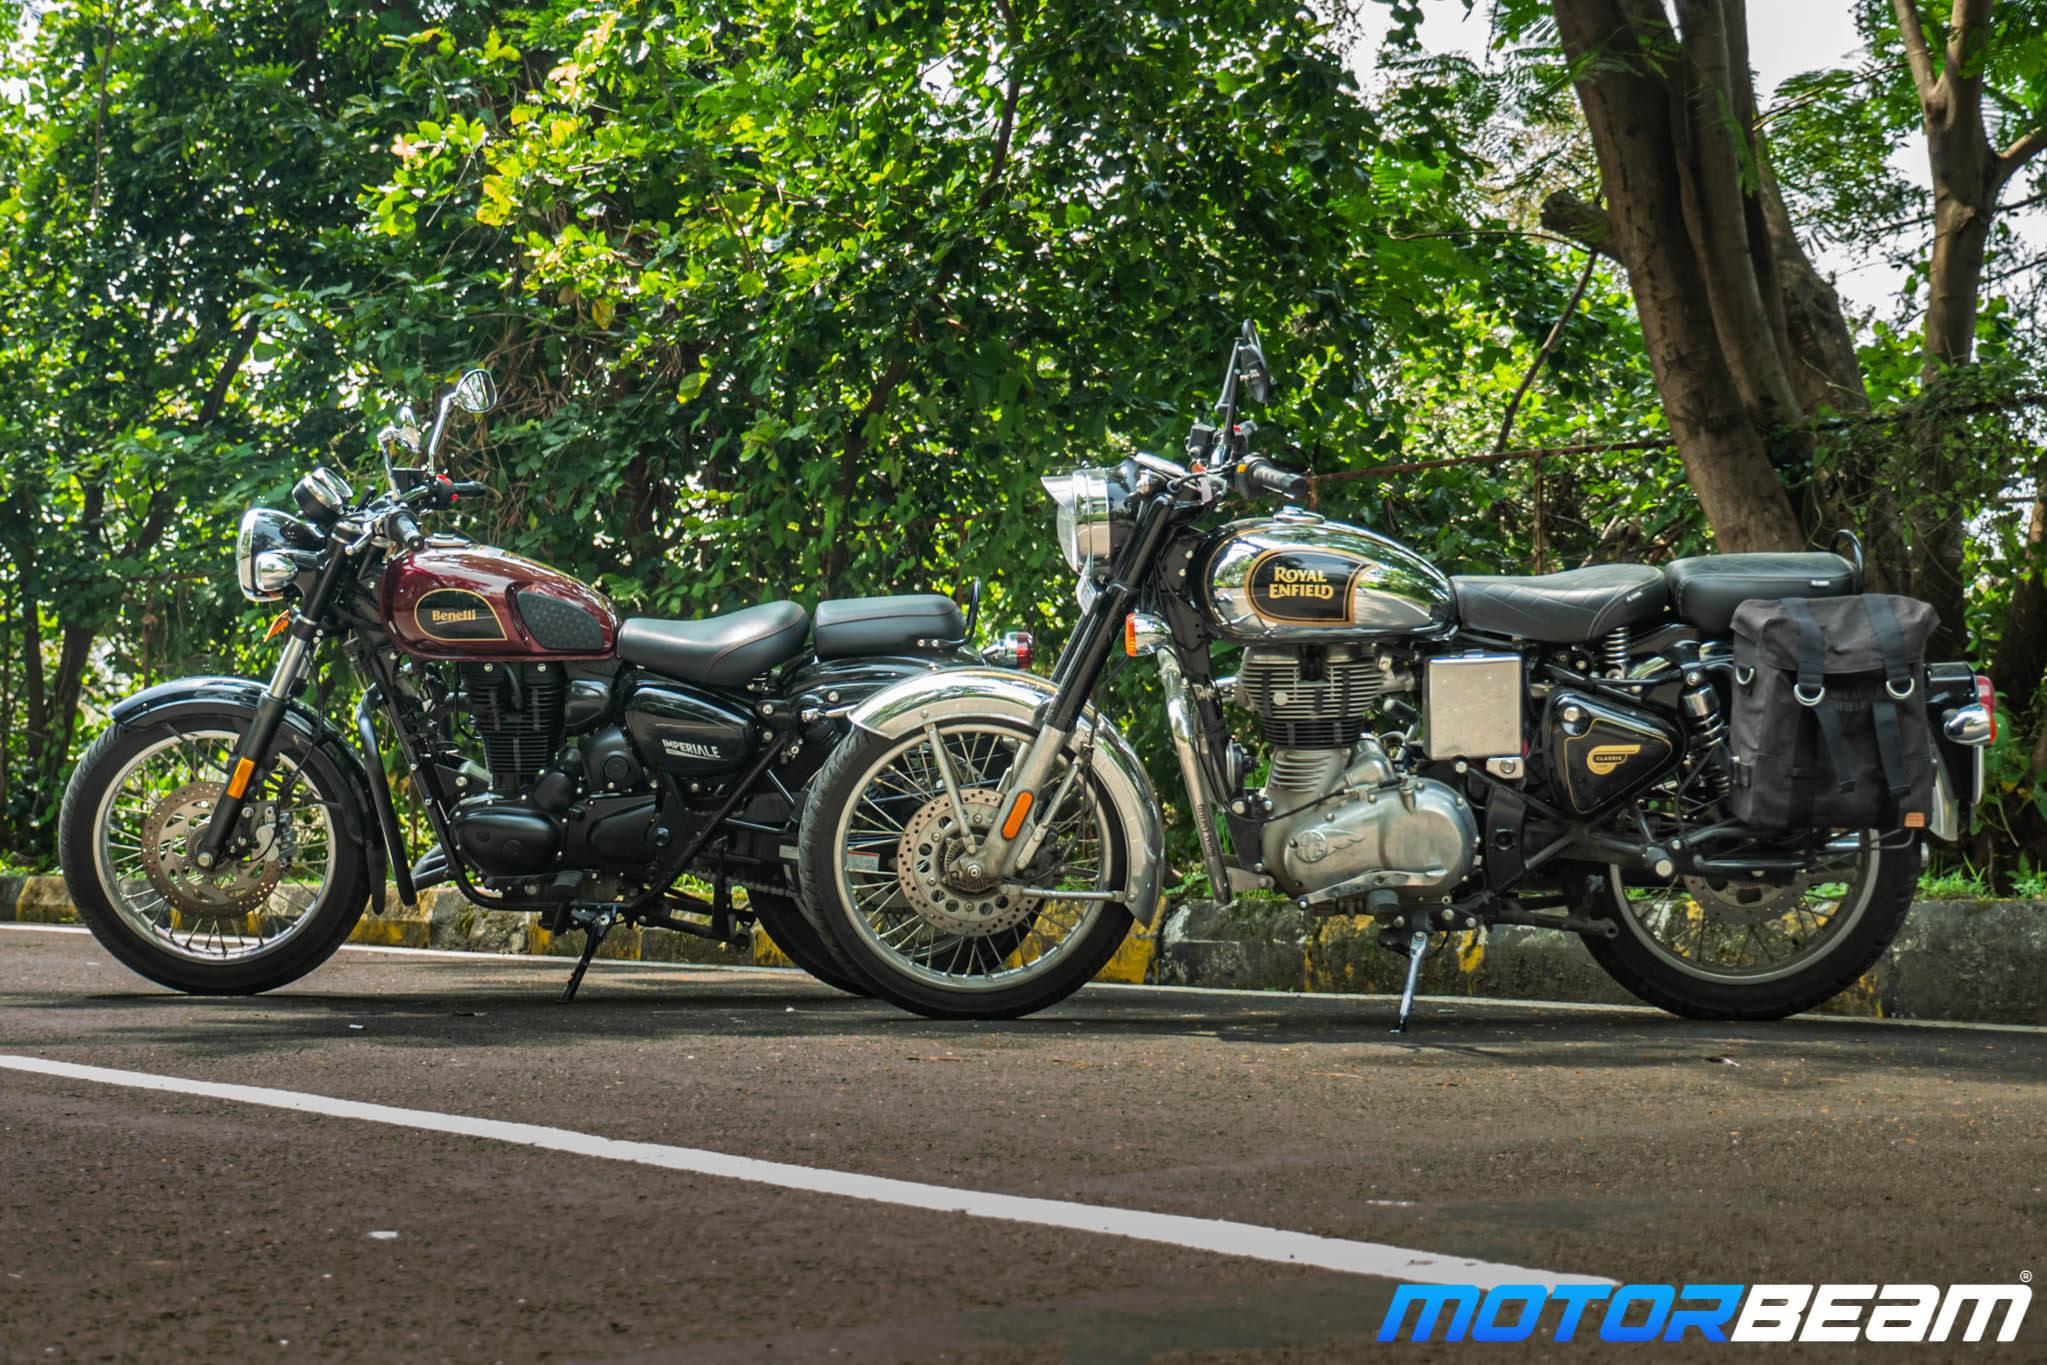 Benelli Imperiale 400 vs Royal Enfield Classic 350 Comparison Review 8